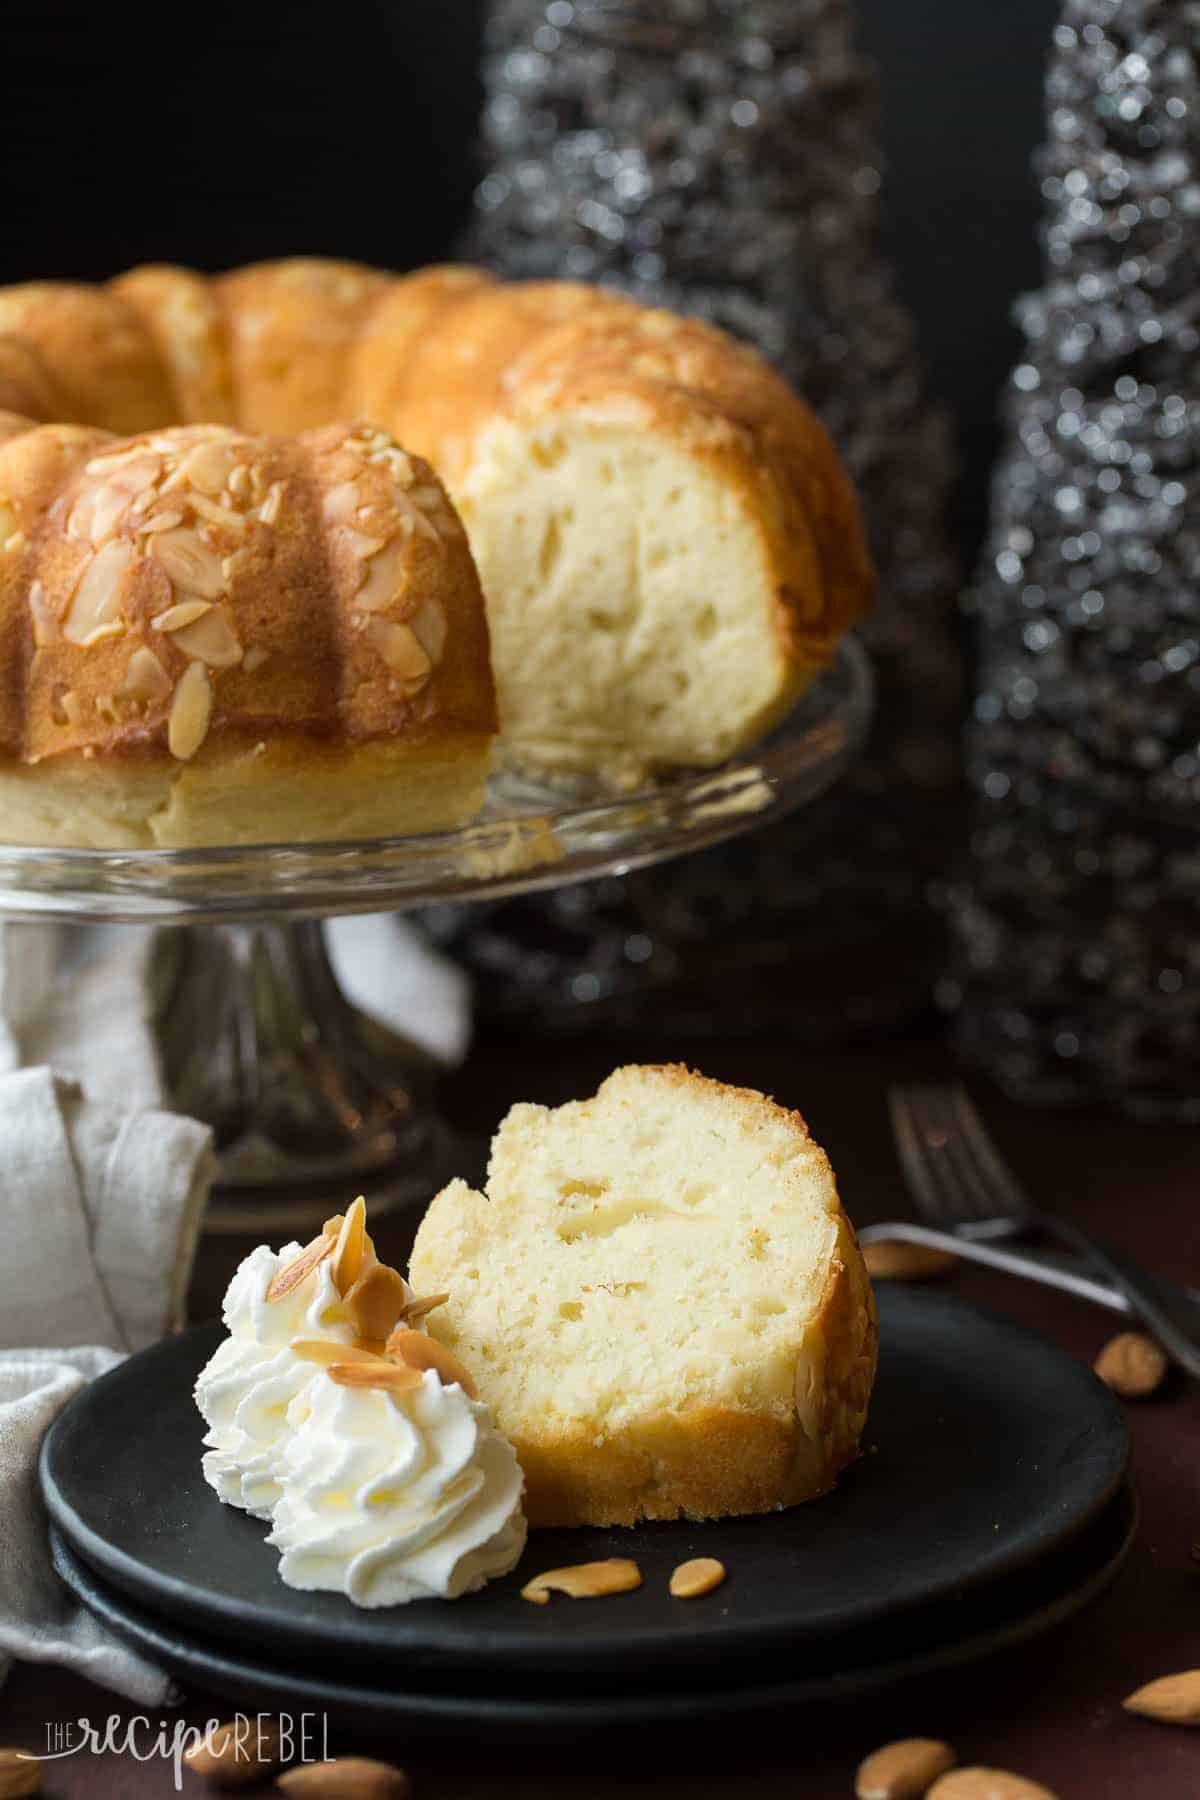 A rich, moist Almond Pound Cake that's made better for you with yogurt and reduced sugar! A fun New Years dessert with one whole almond baked in -- whoever gets the almond will have one year good luck!